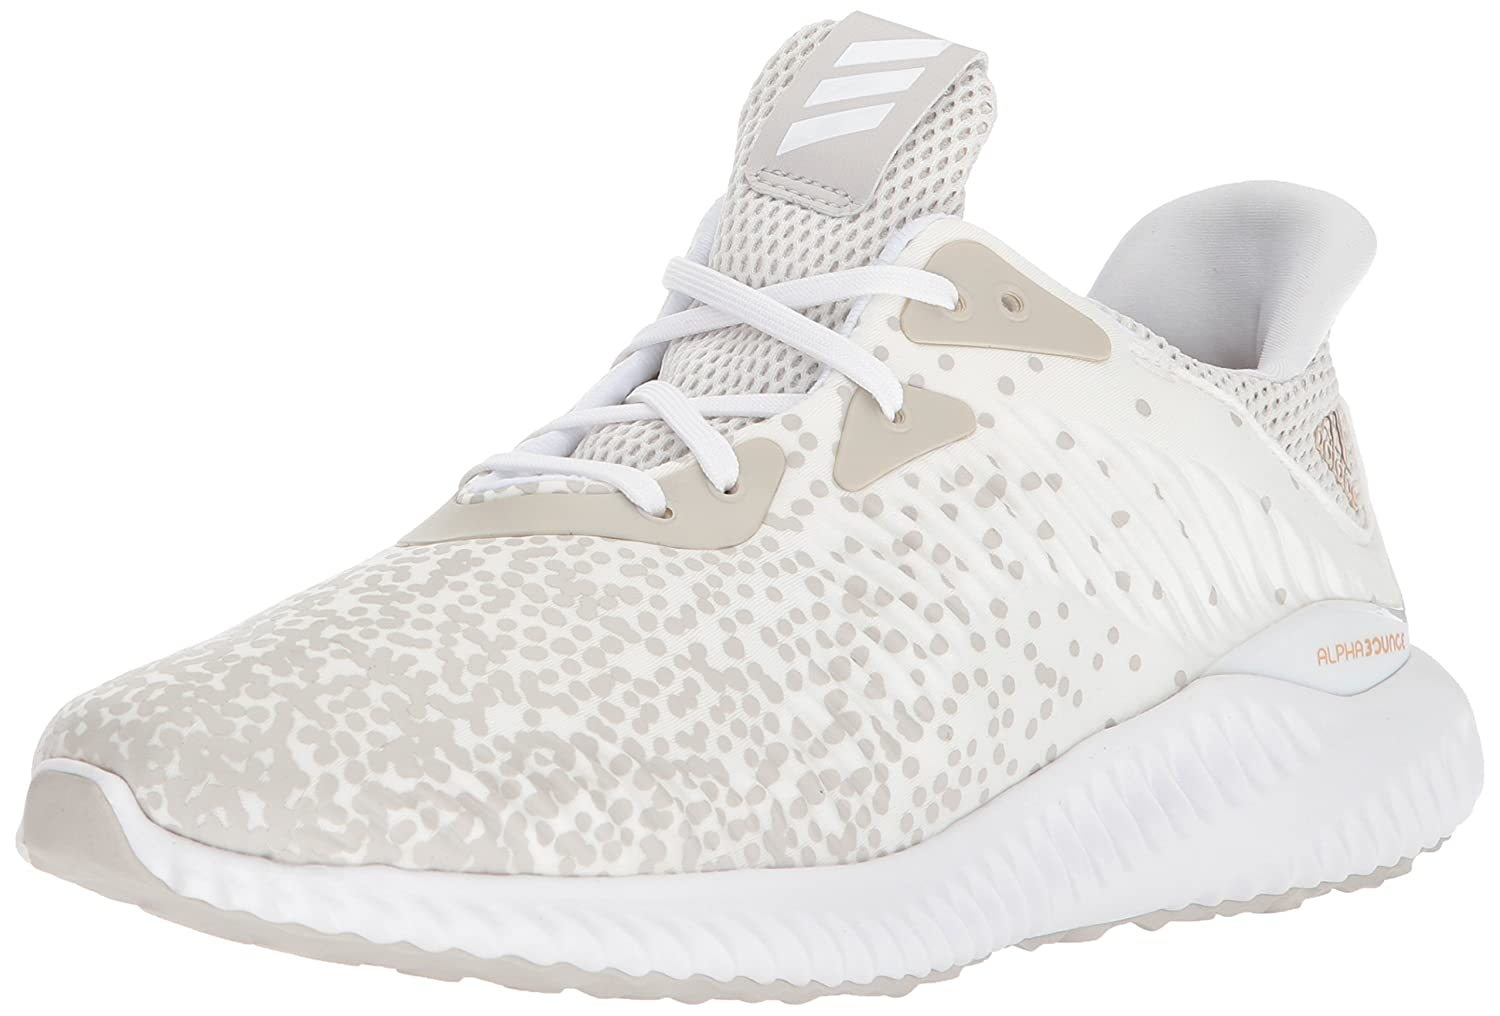 adidas Women's Alphabounce 1 W B071LFHK51 6 B(M) US|White/White/Grey One